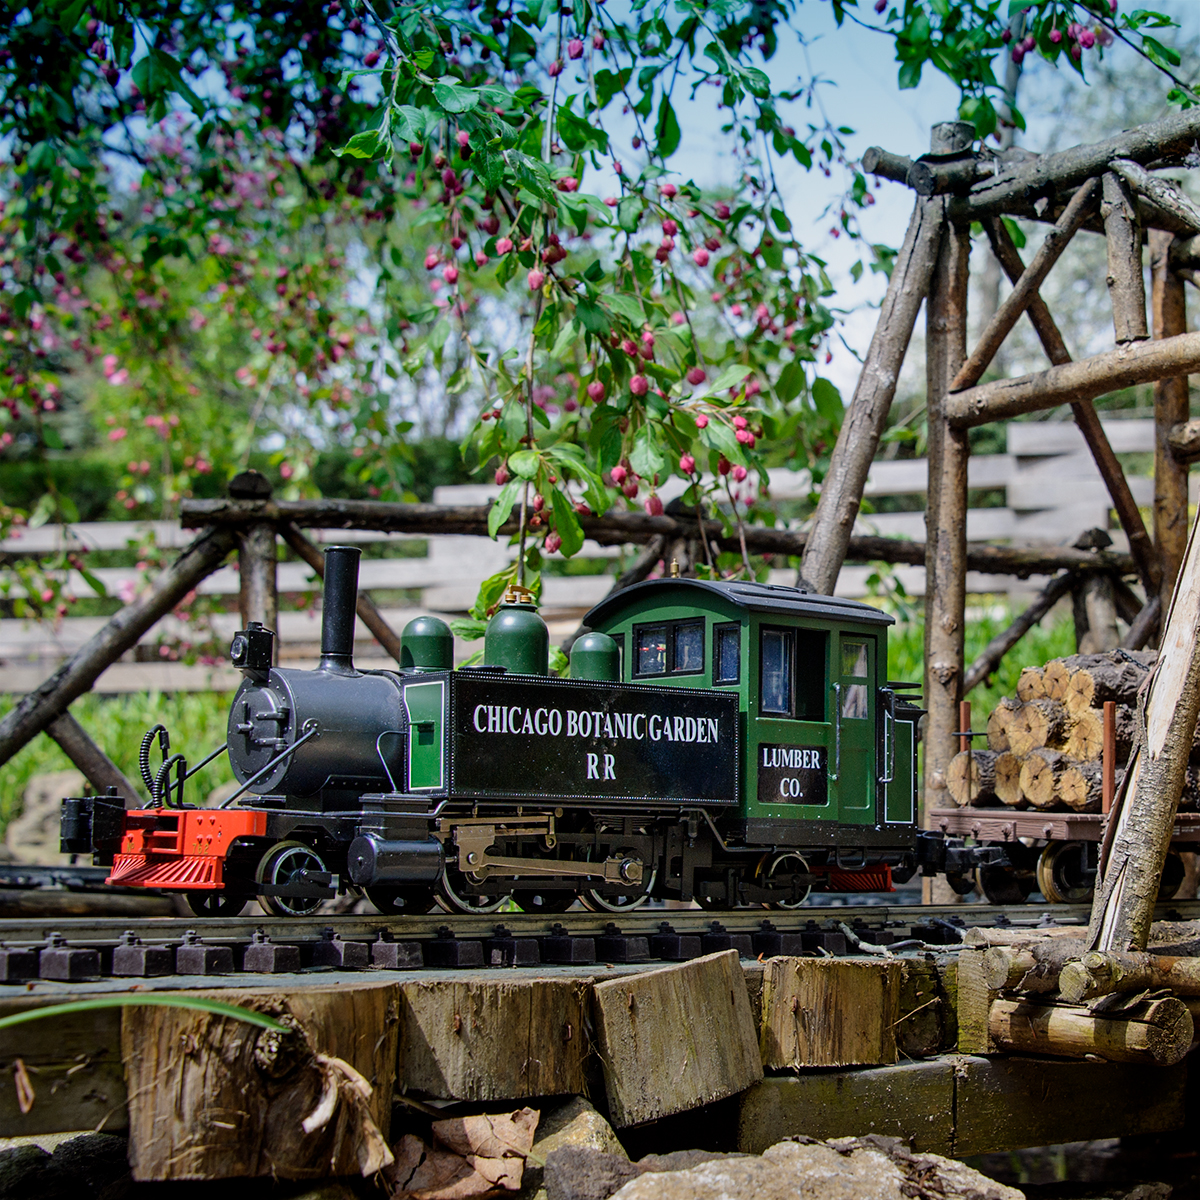 Making the trains run at the Model Railroad Garden